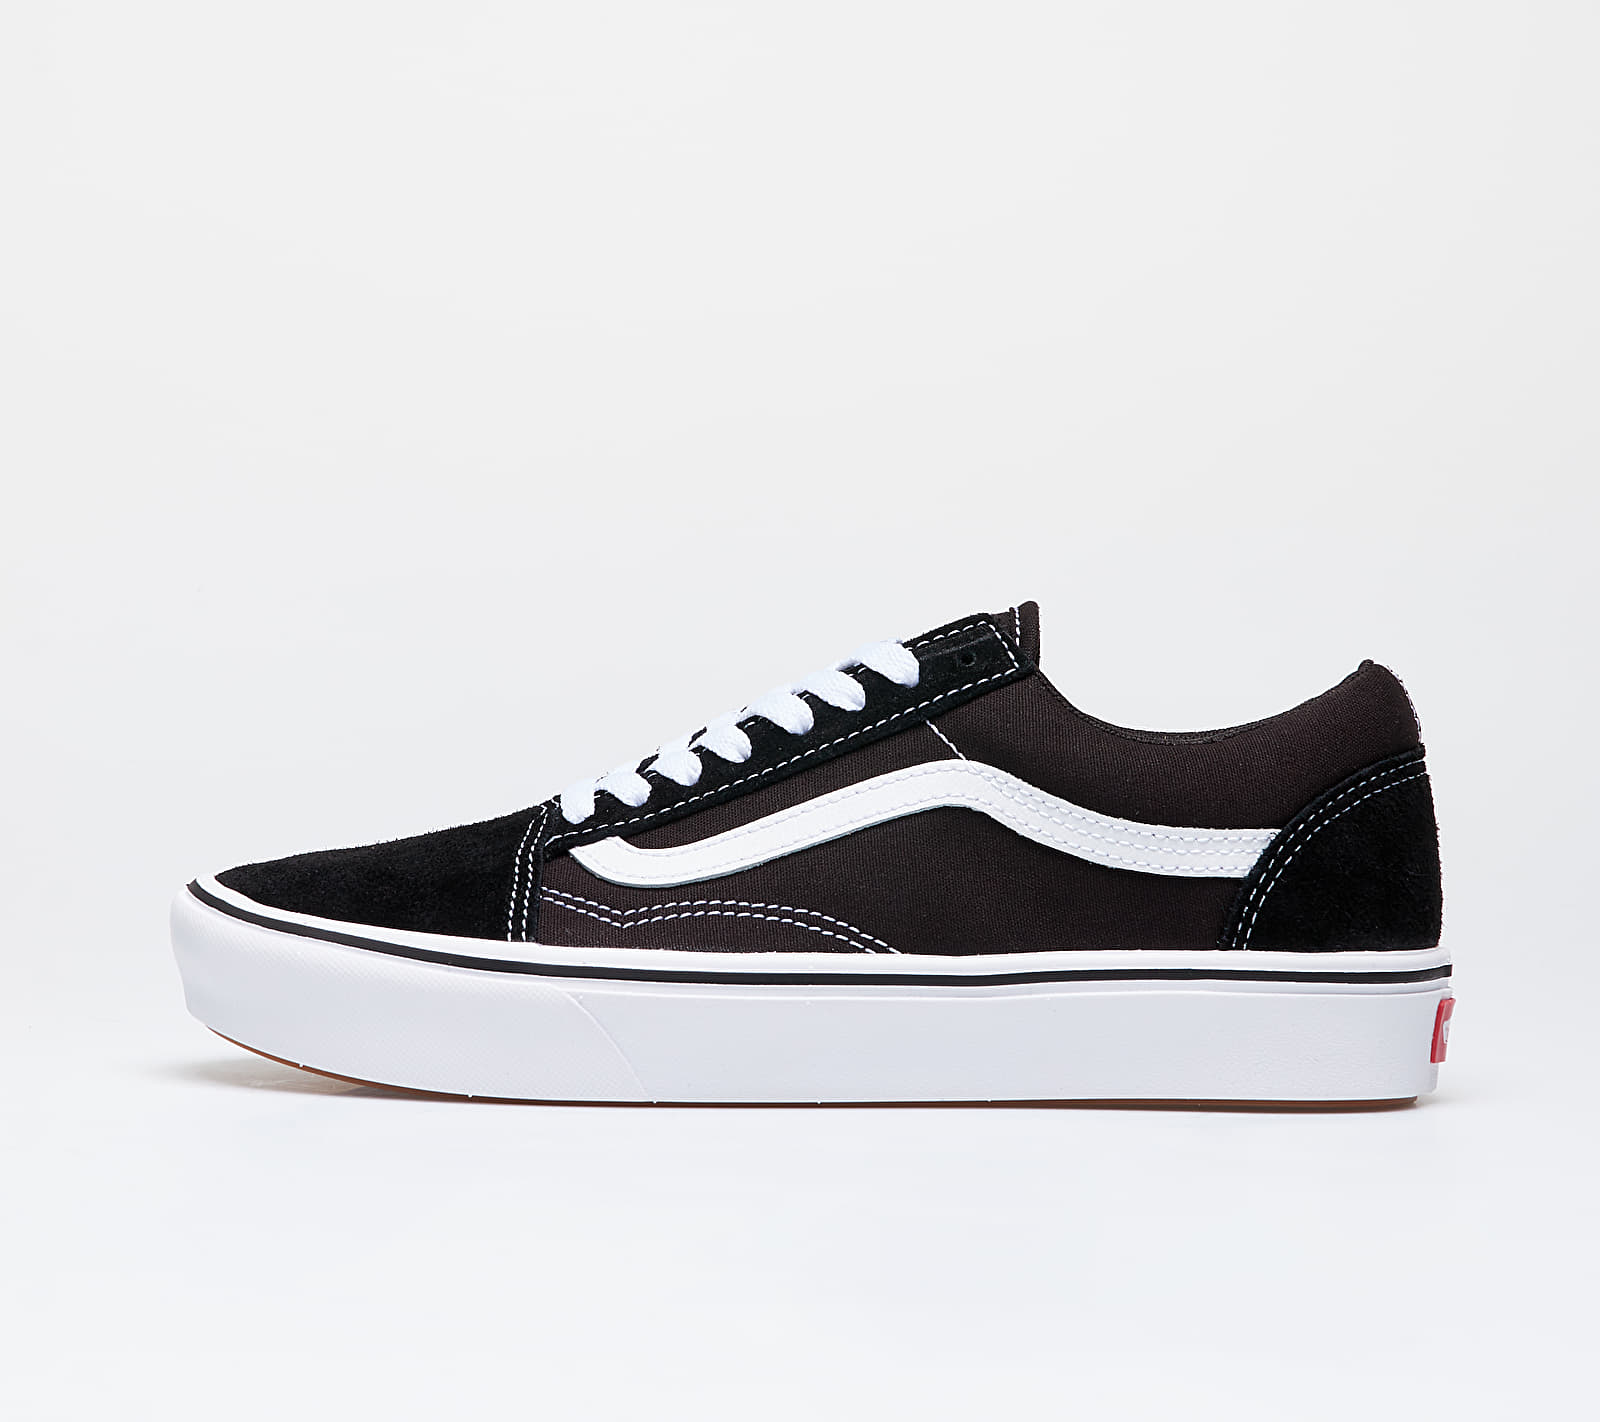 Vans ComfyCush Old Skool (Classic) Black/ True White VN0A3WMAVNE1